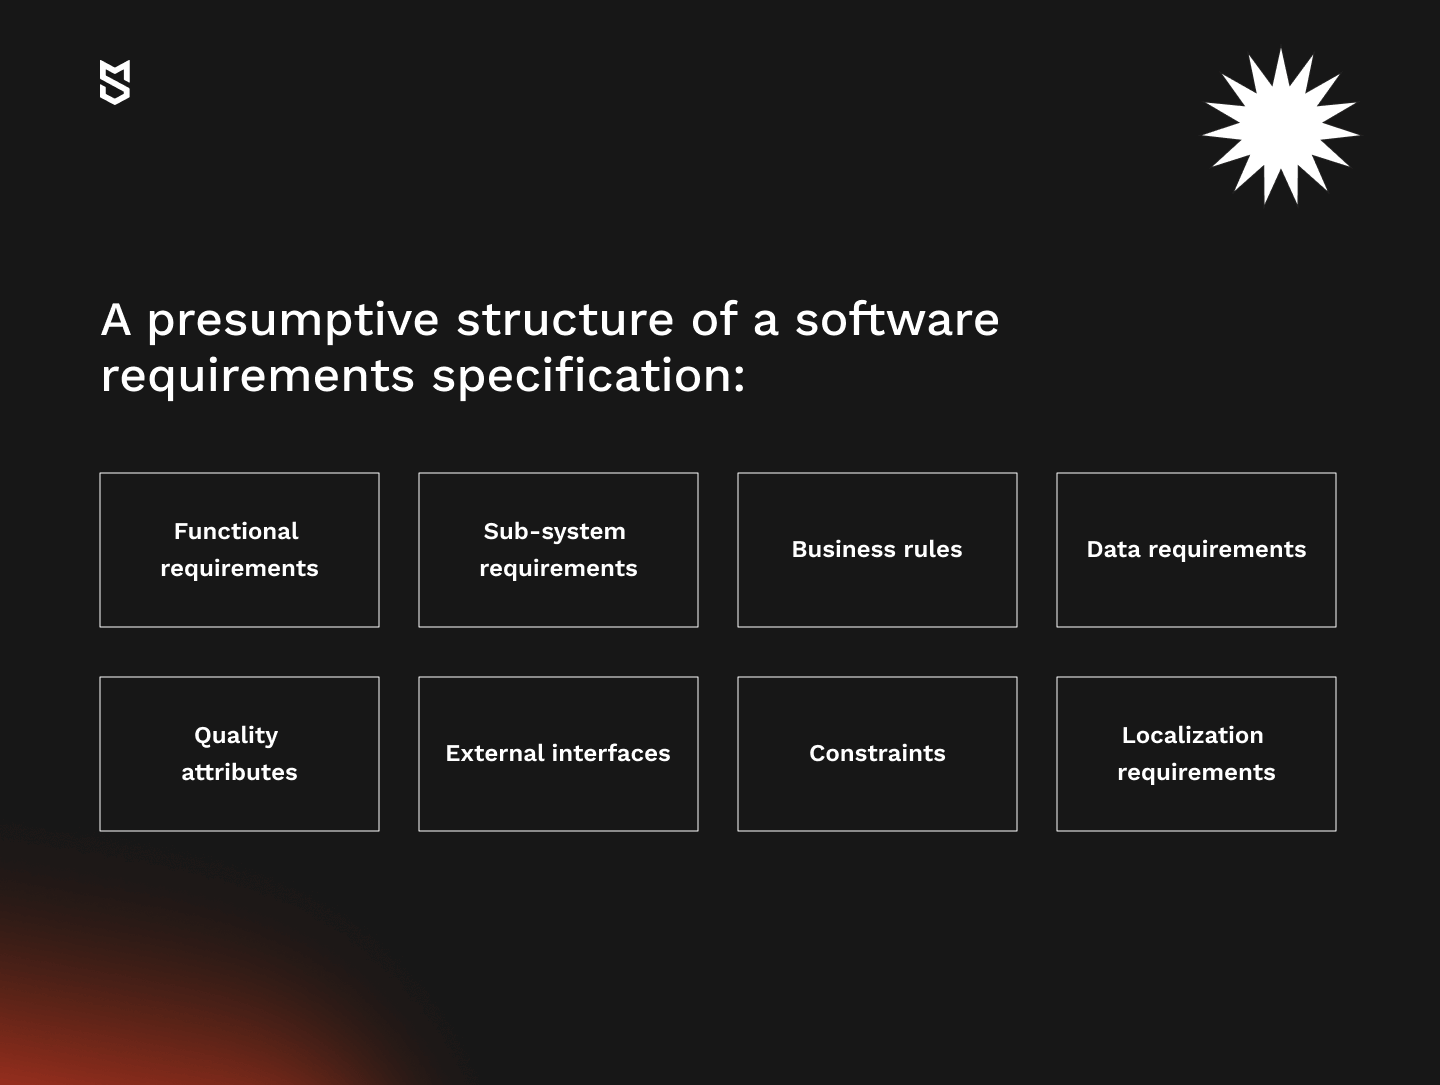 Potential structure of a software requirements specification